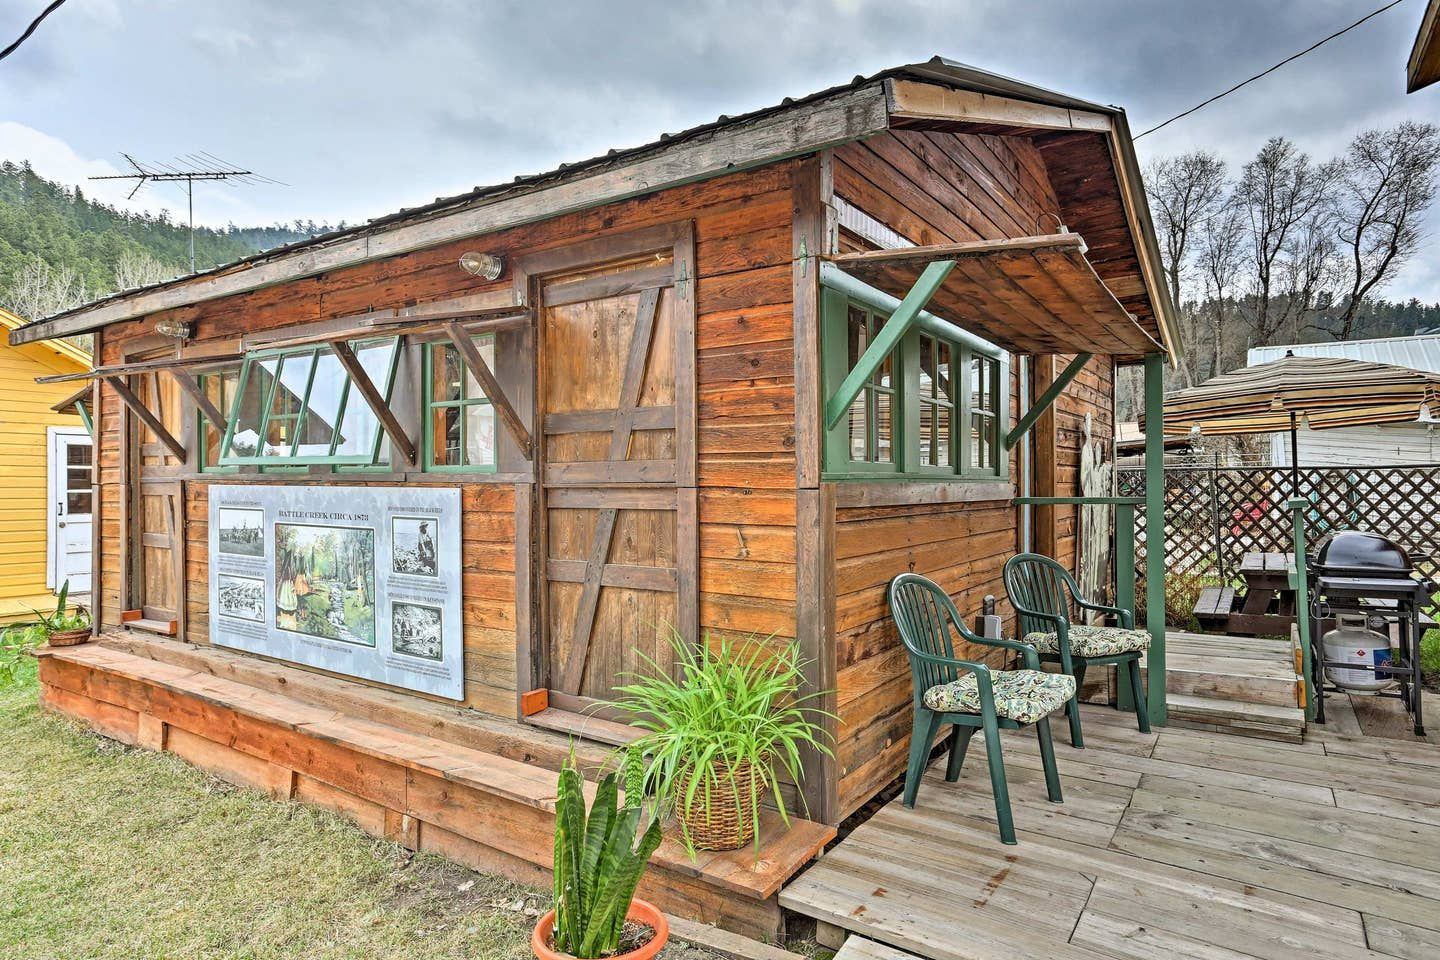 Rustic Keystone House 4 Miles From Mt Rushmore Cabins For Rent In Keystone Keystone Homes Cabin Evolve Vacation Rental